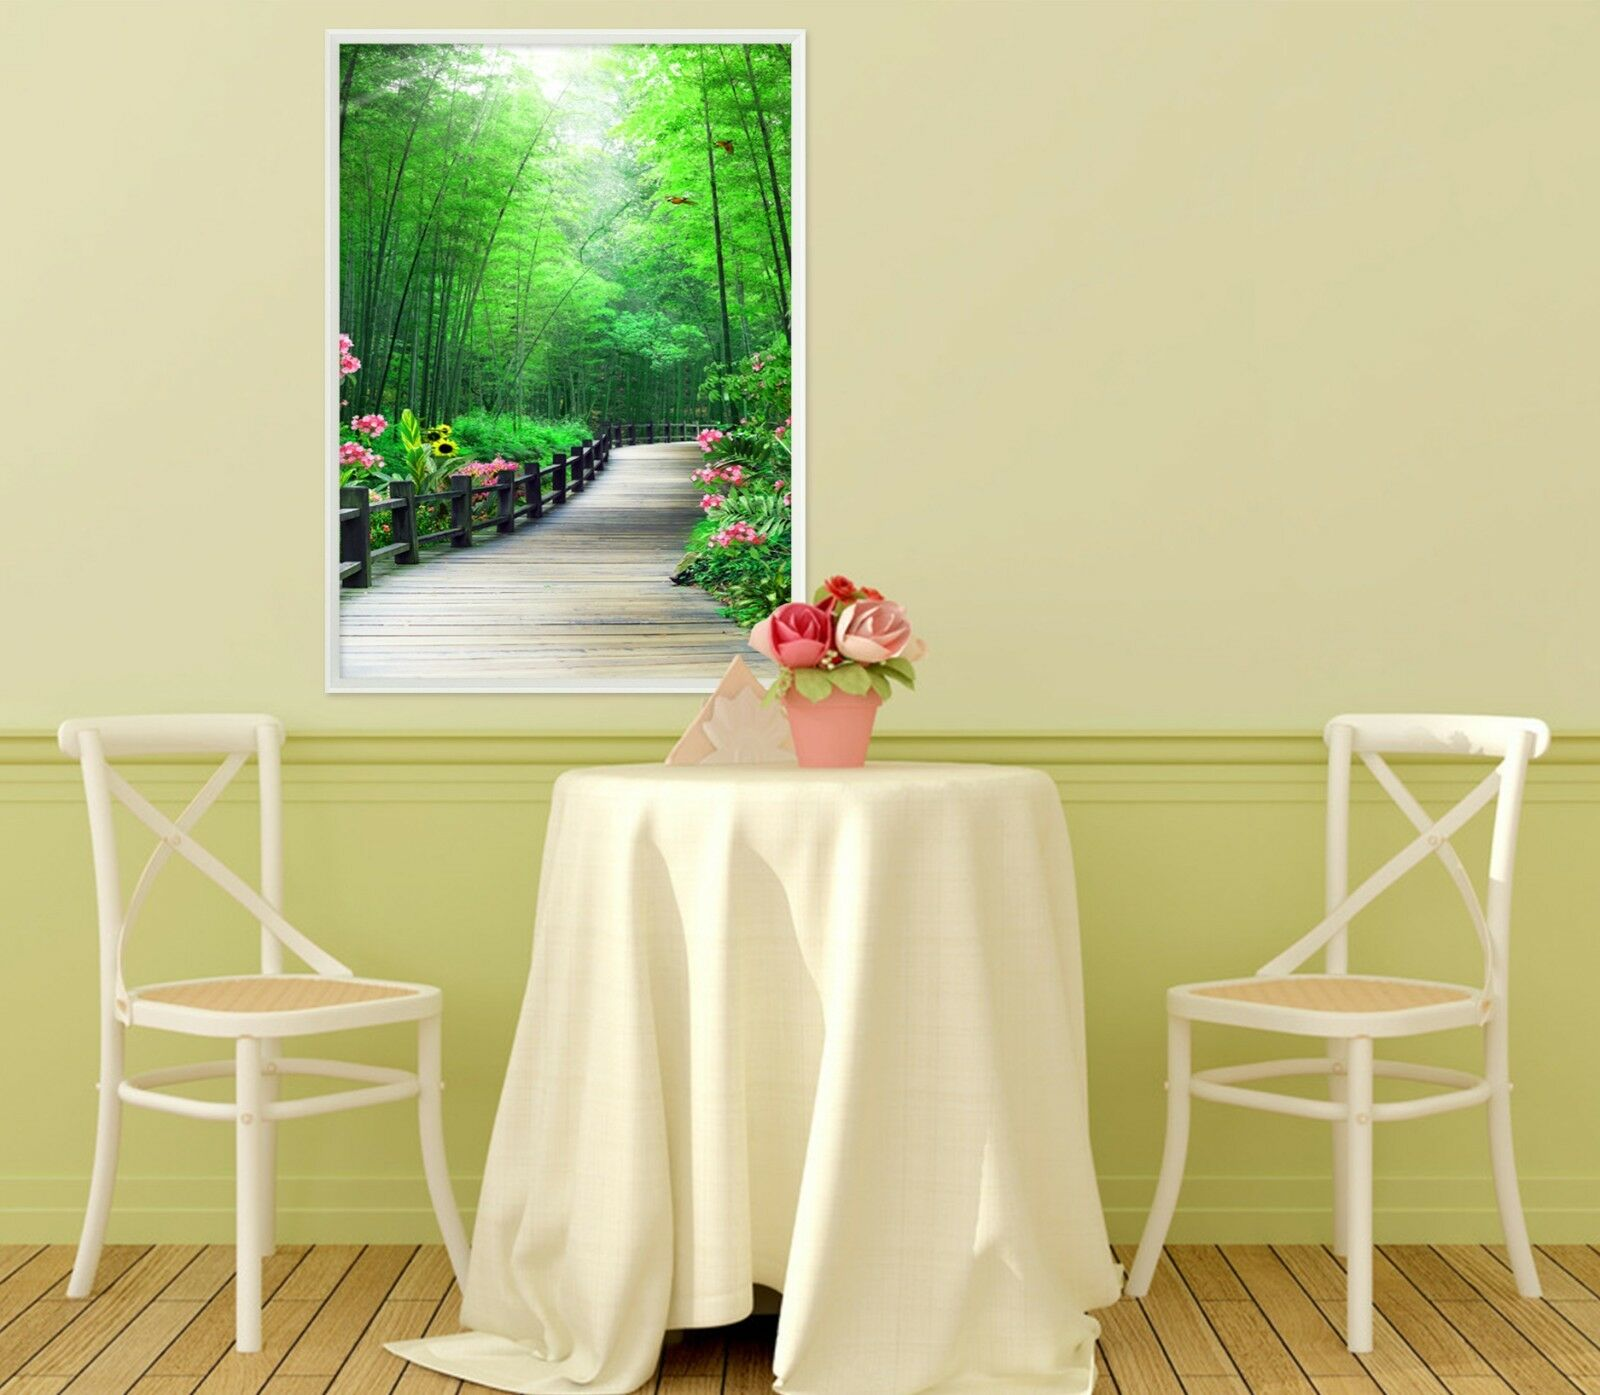 3D Bamboo Forest Road 57 Framed Poster Home Decor Print Painting Art AJ AU